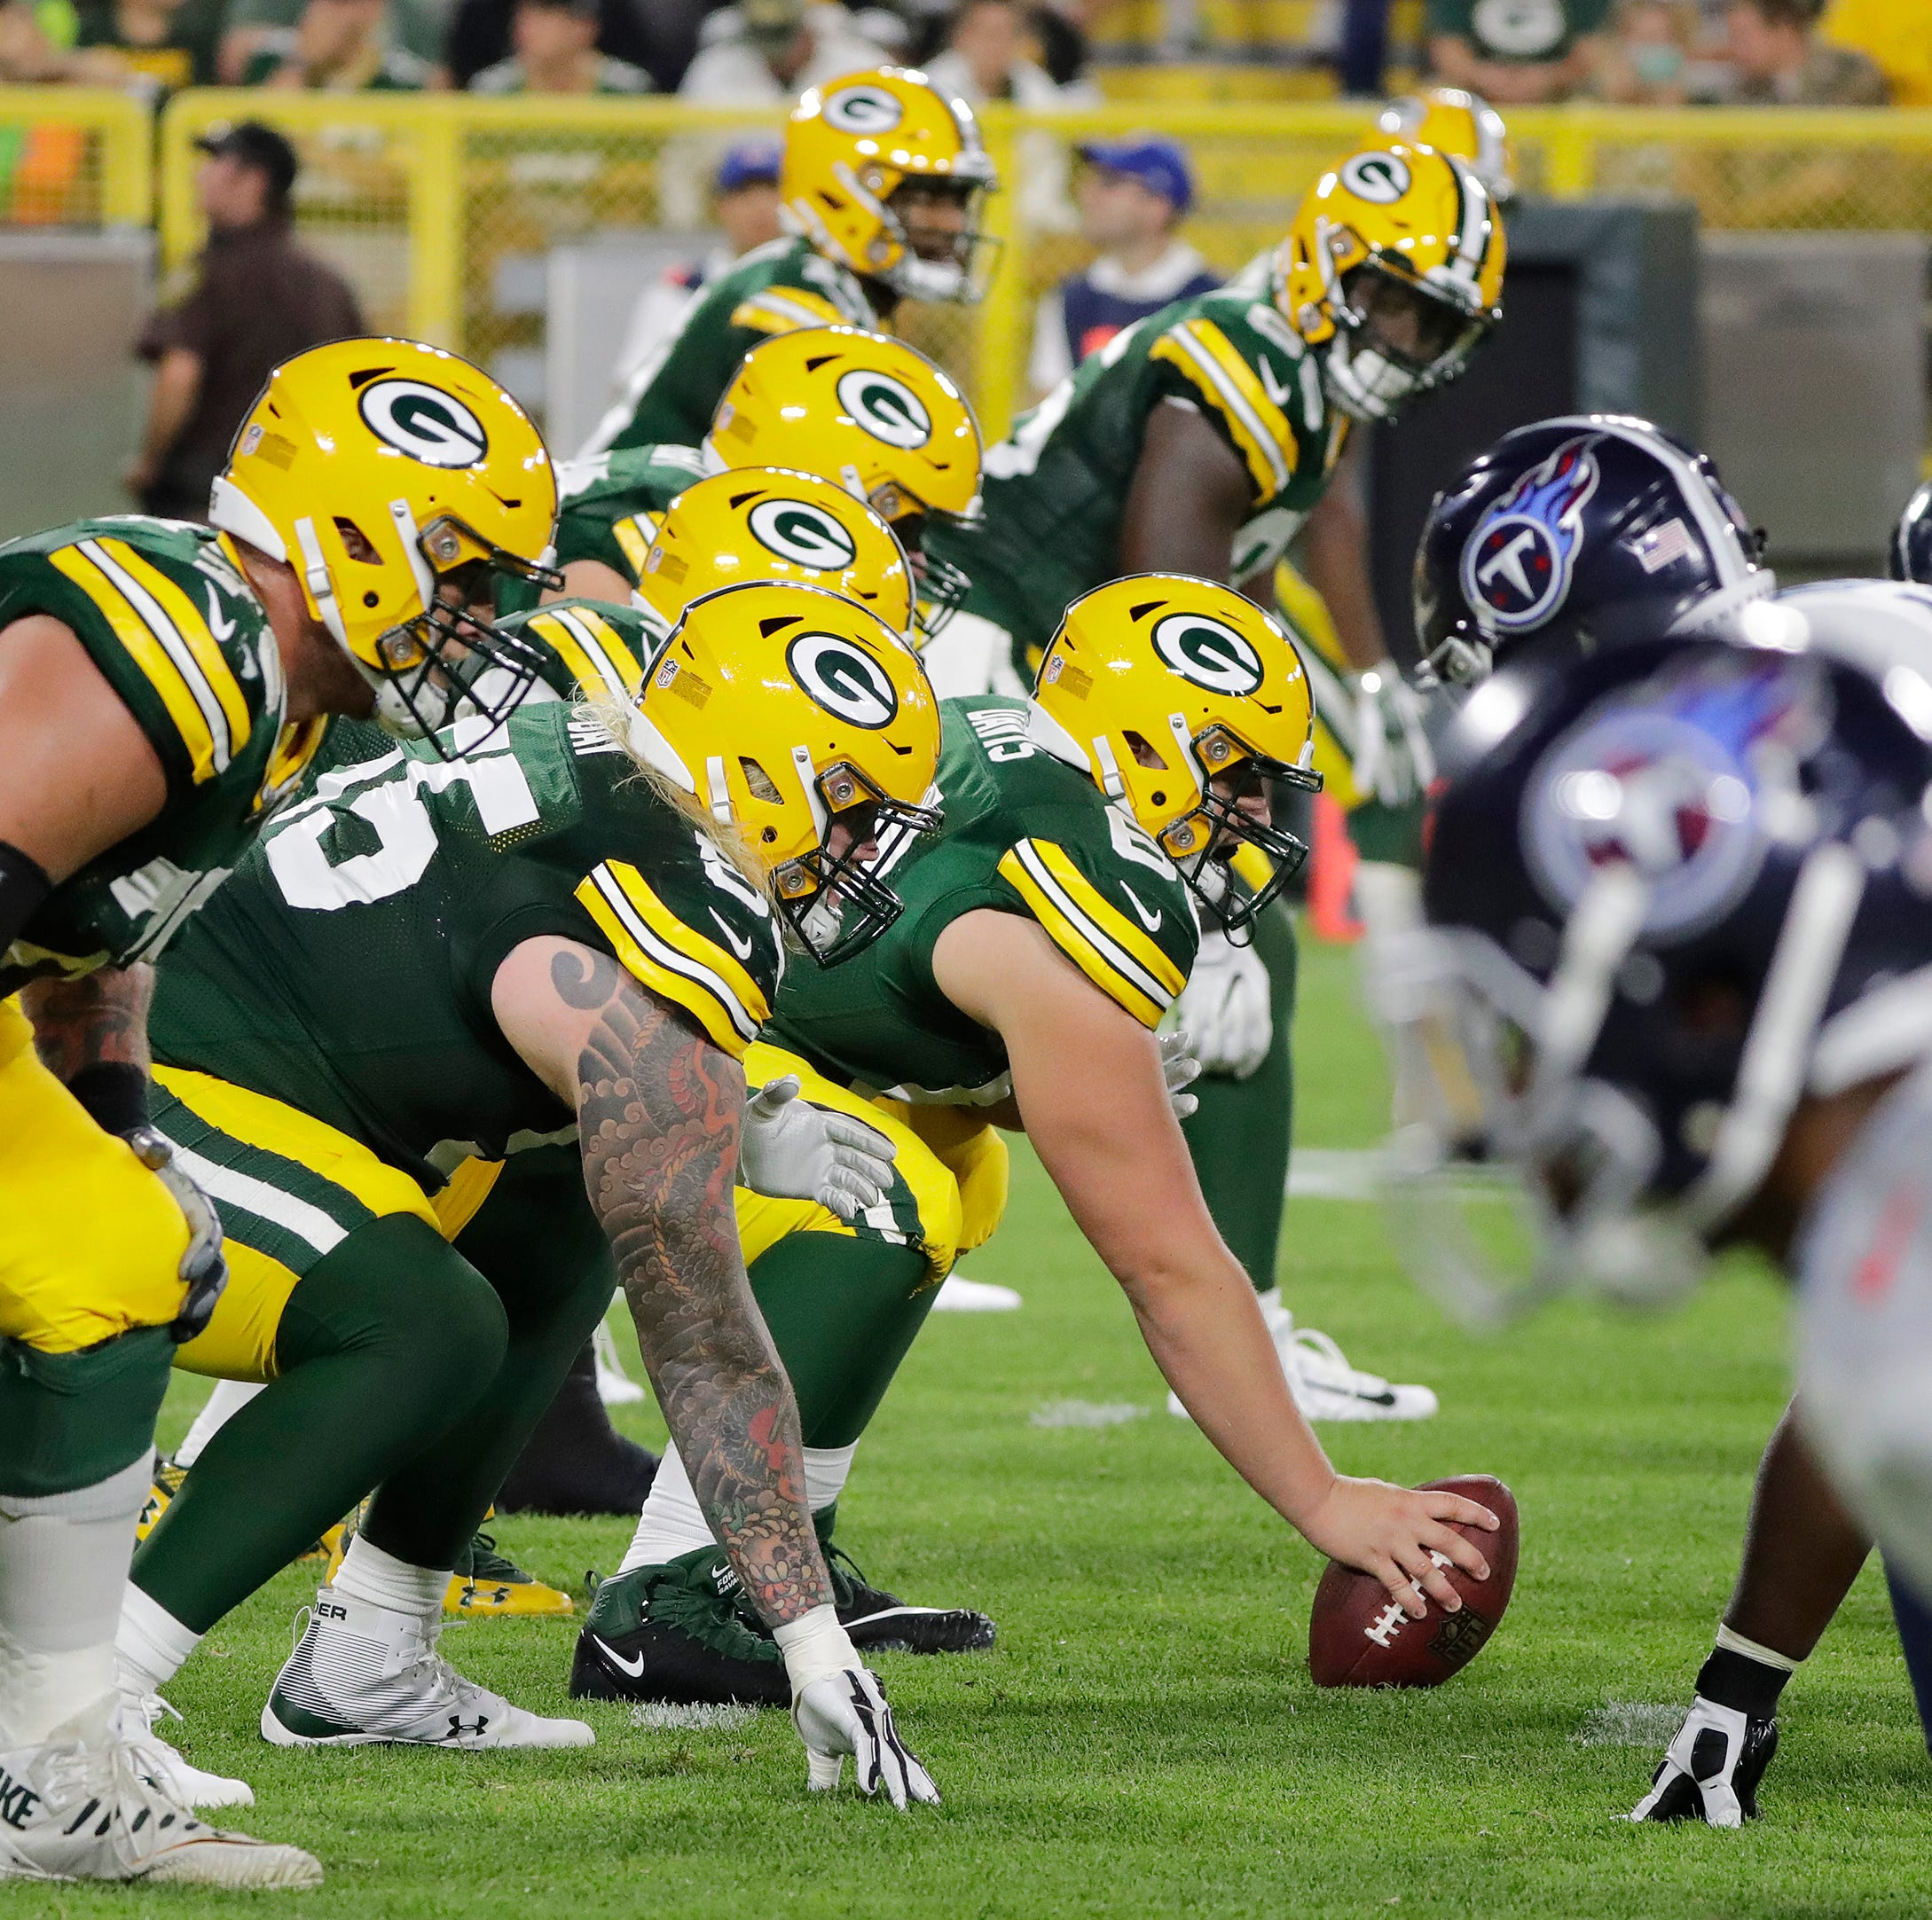 Letter: Why are Green Bay Packer preseason games on Thursday night?